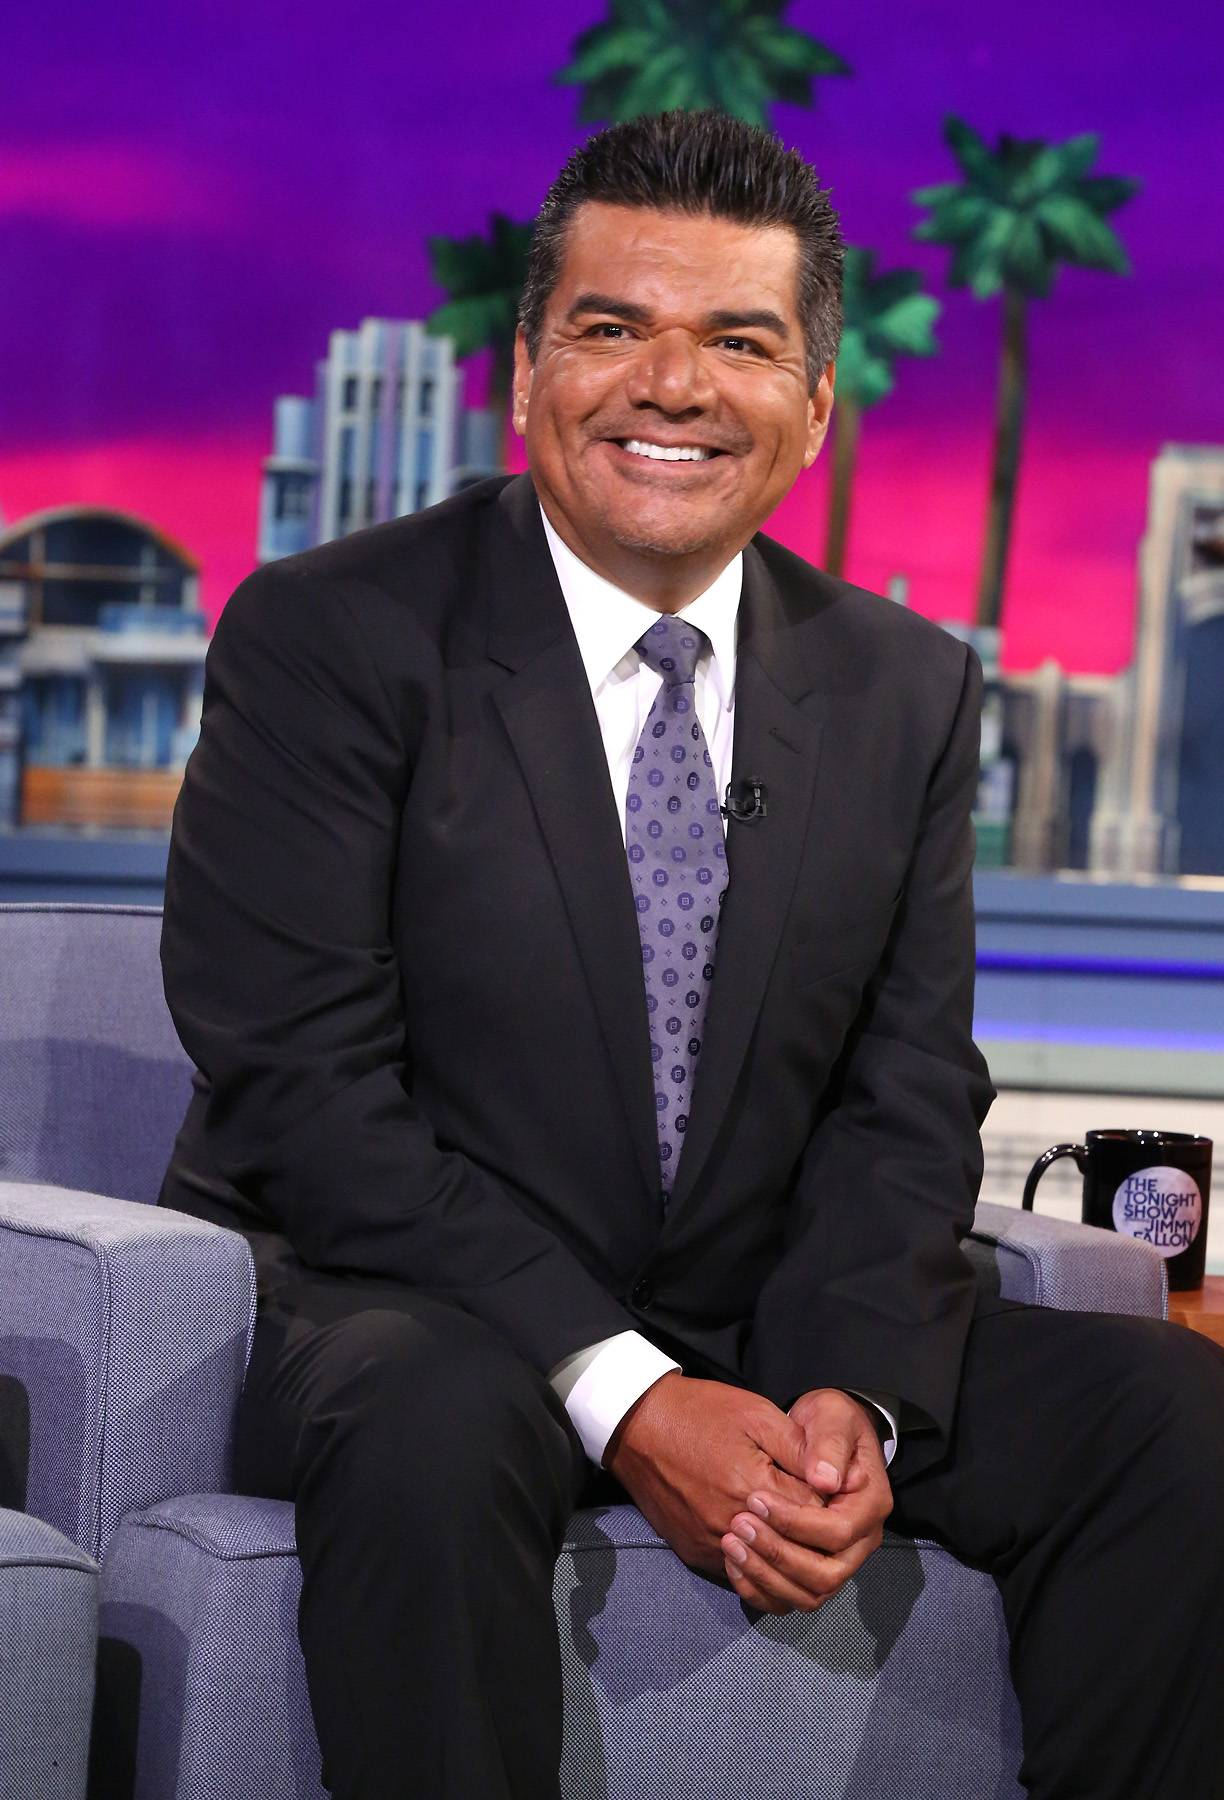 George Lopez Always Keeps It Real - Much like Kevin and the gang, George Lopez has undeniable Husbands credentials. Check him out here. (Photo: Douglas Gorenstein/NBC/NBCU Photo Bank)